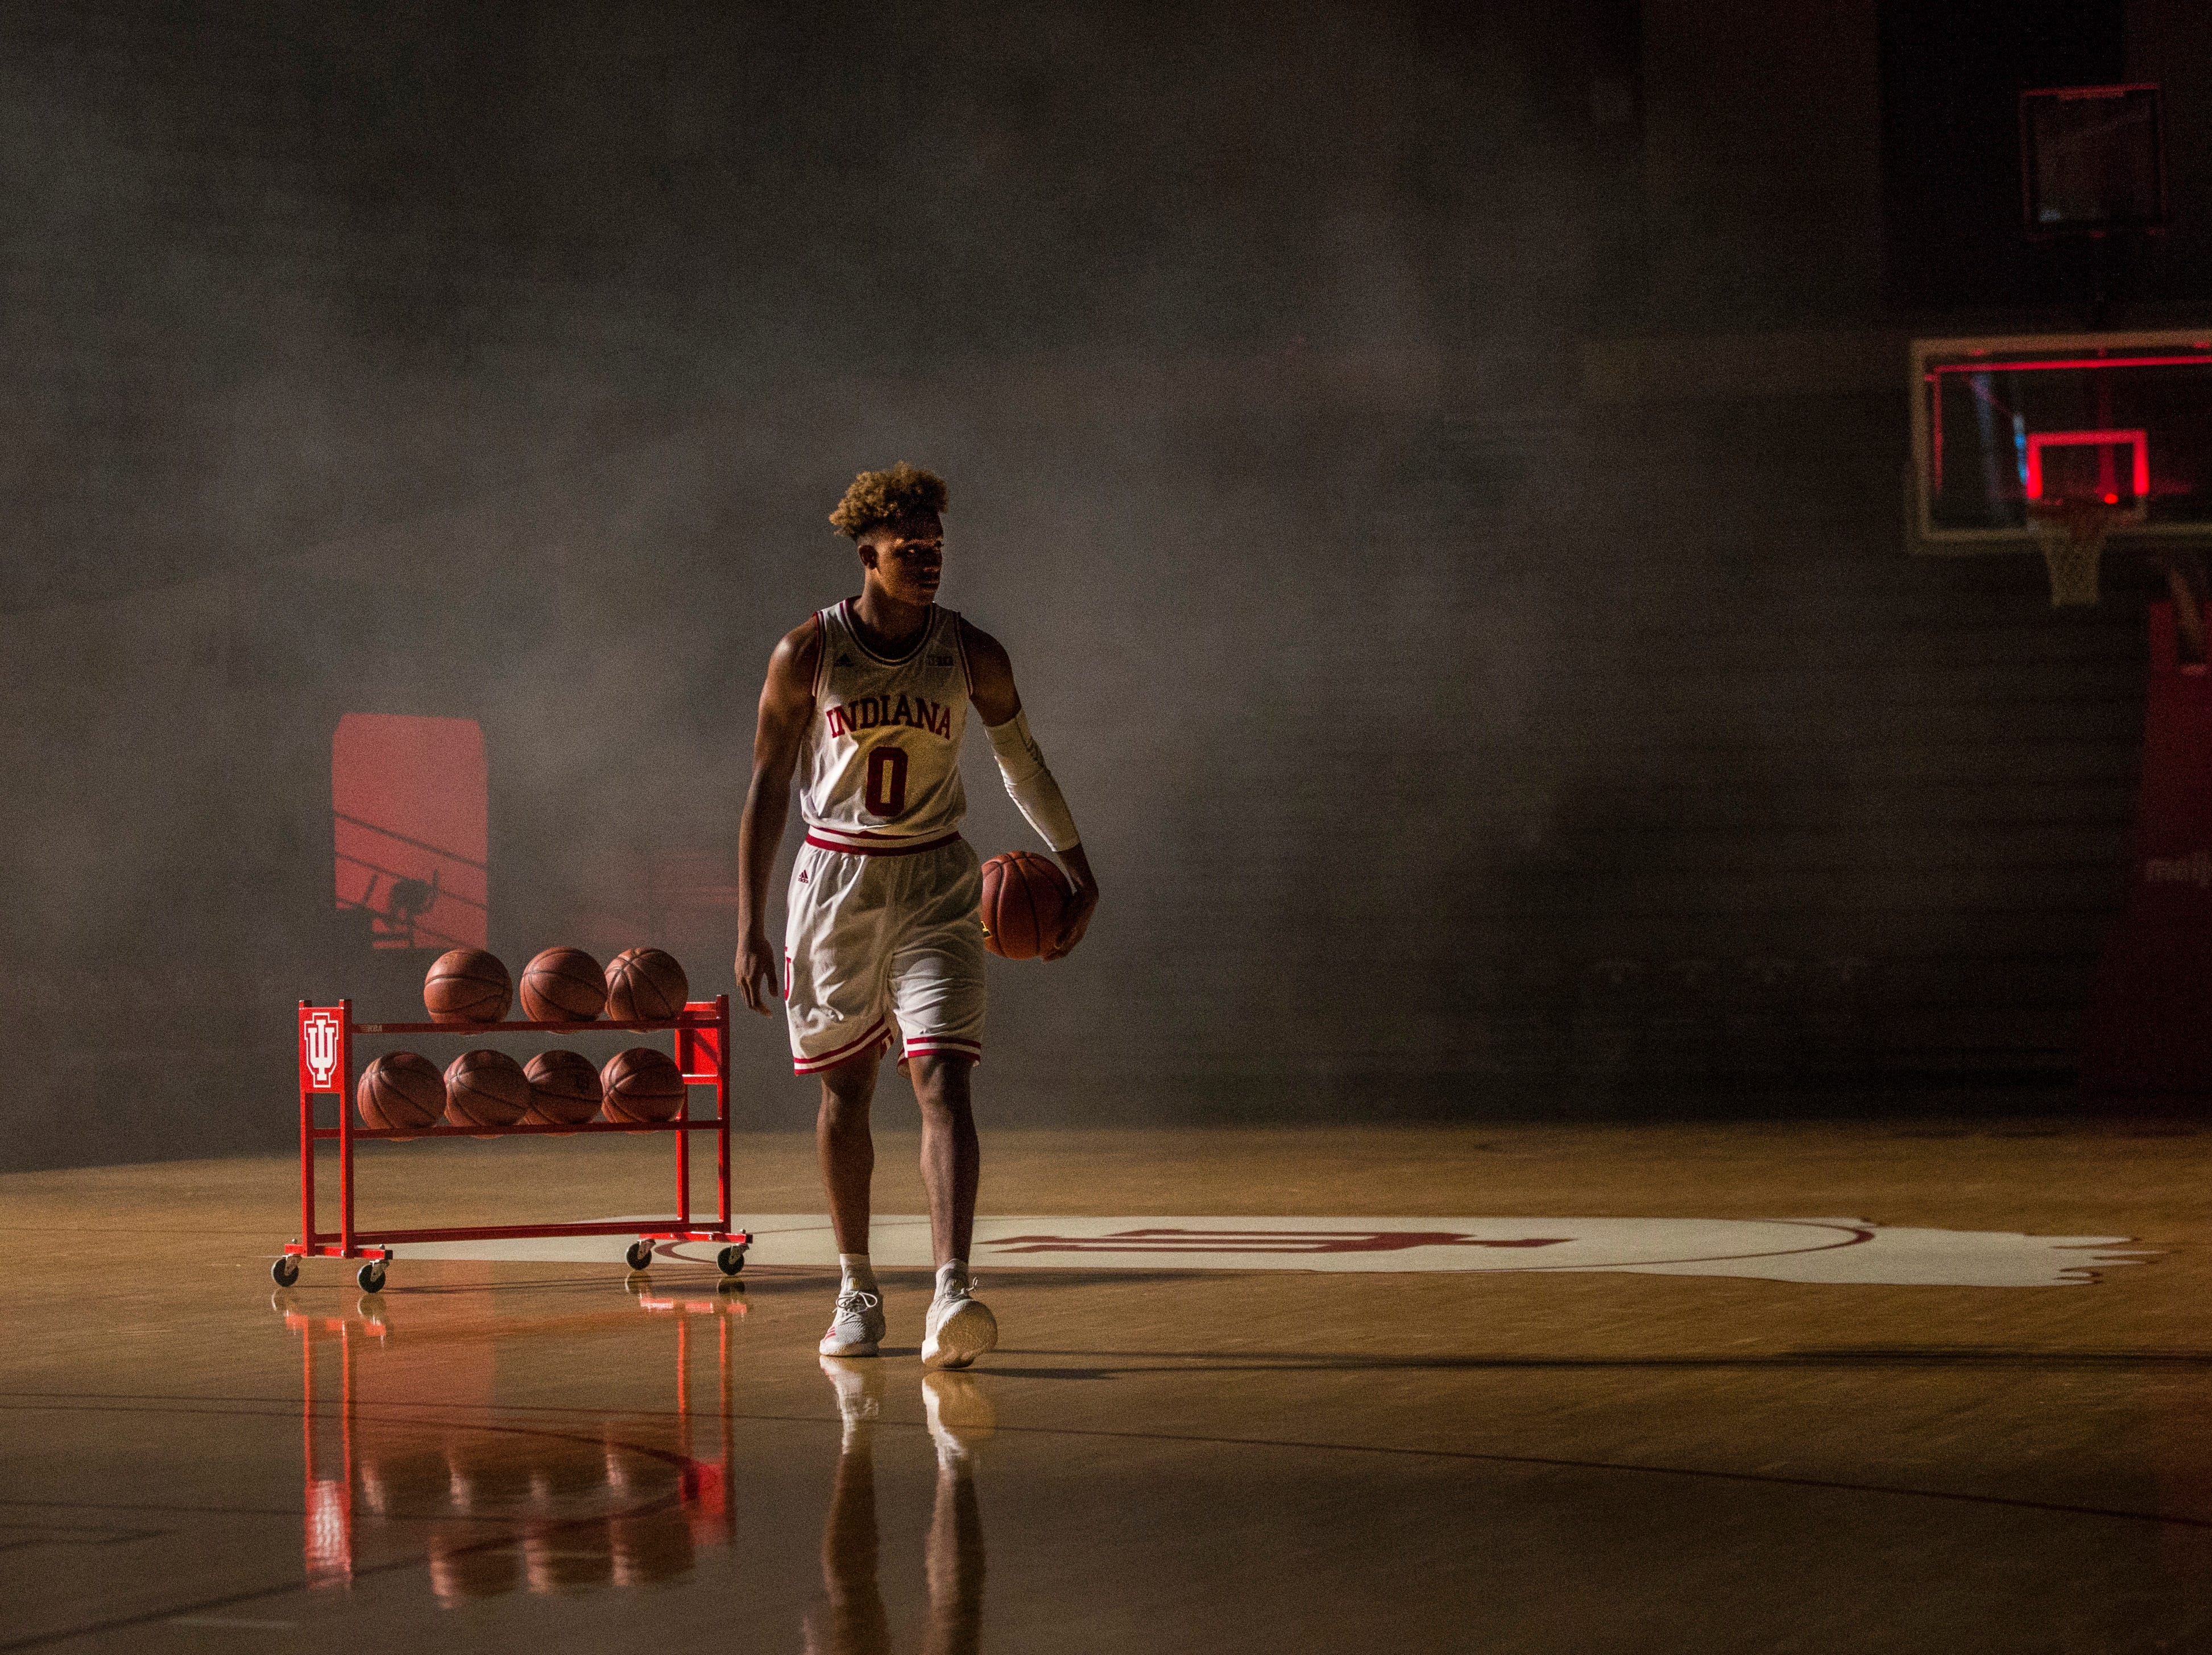 New Albany native Romeo Langford walks off the Indiana court during media day at Assembly Hall Wednesday afternoon. Coach Archie Miller says Langford's athleticism reminded him of Randy Moss and quickness like Usain Bolt. There's a lot of Hoosier hopes riding on the shoulders of the highly touted freshman. Sept. 26, 2018